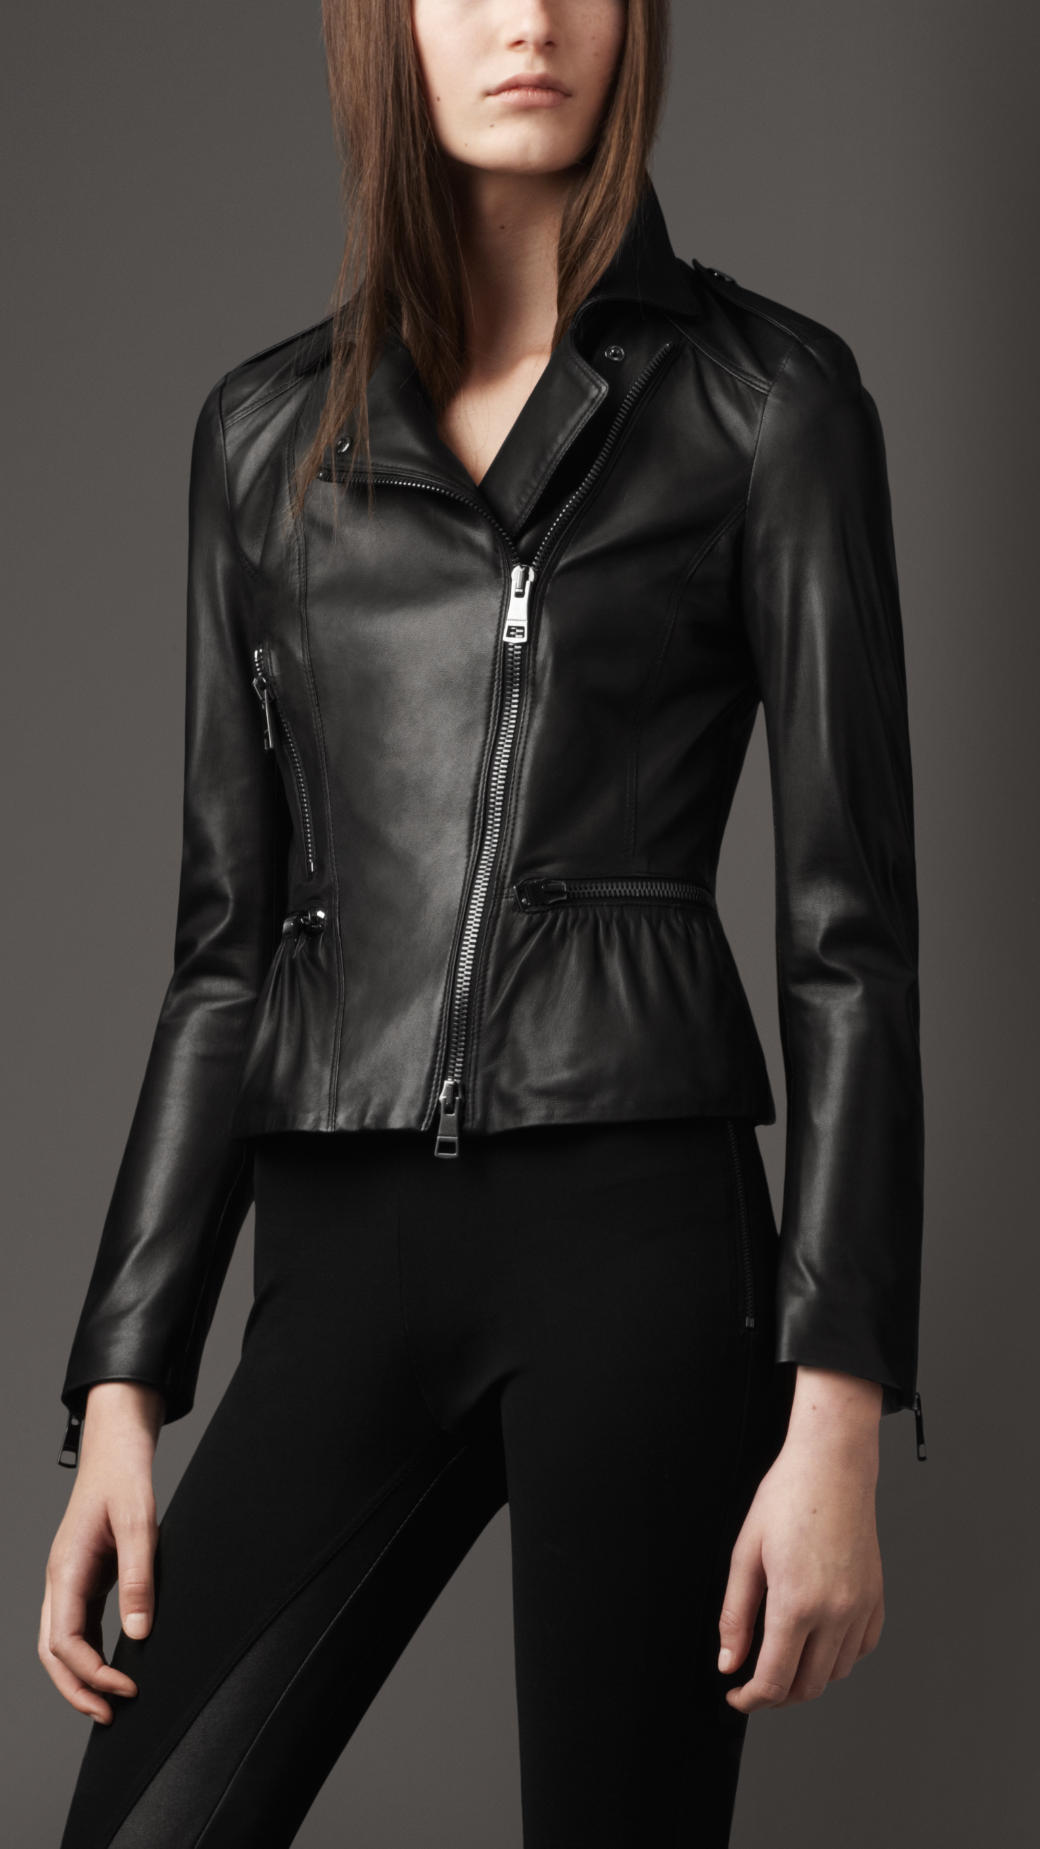 Leather burberry jacket